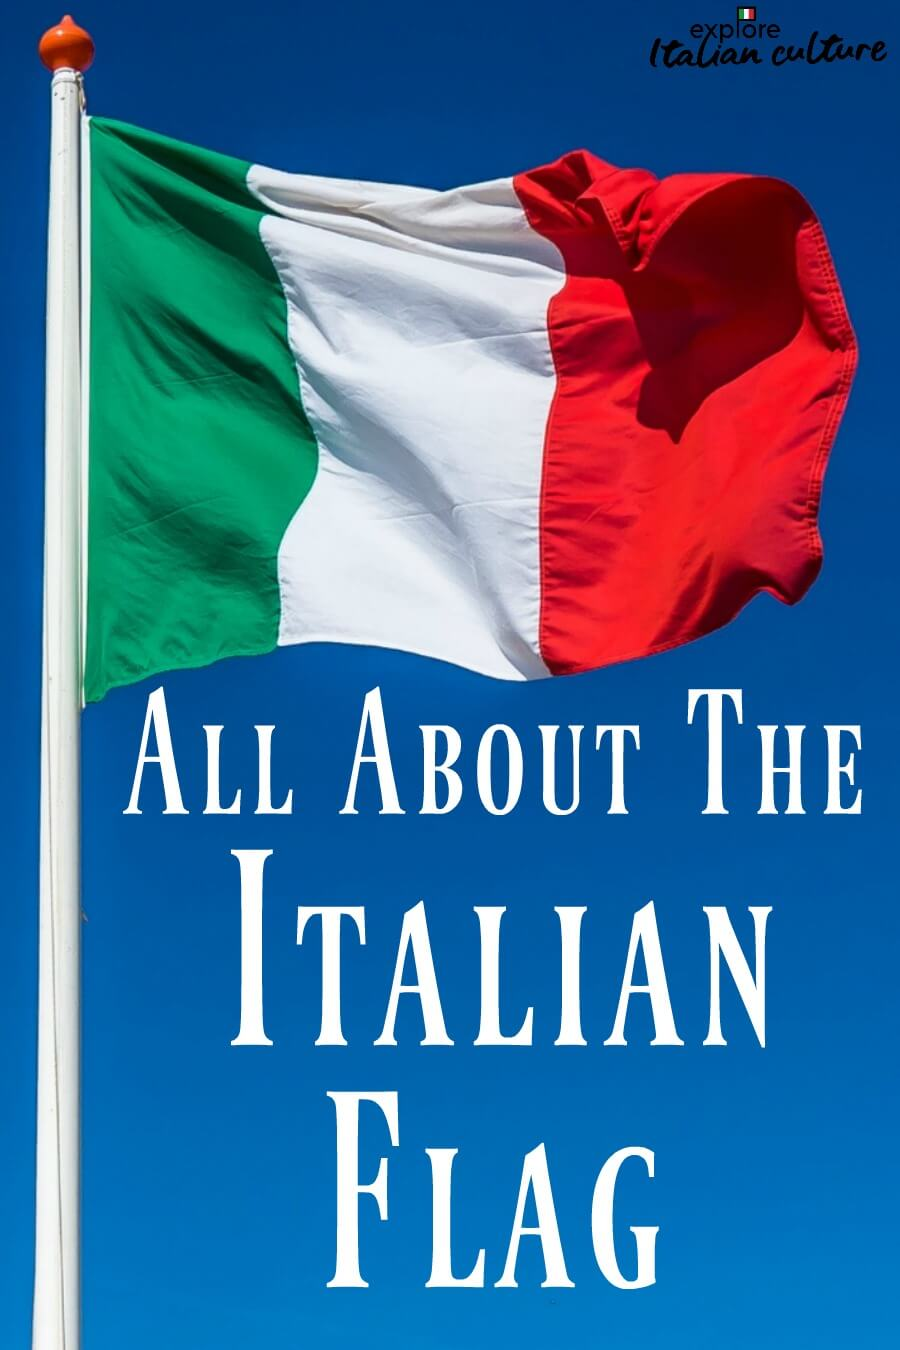 Facts about the Italian flag.